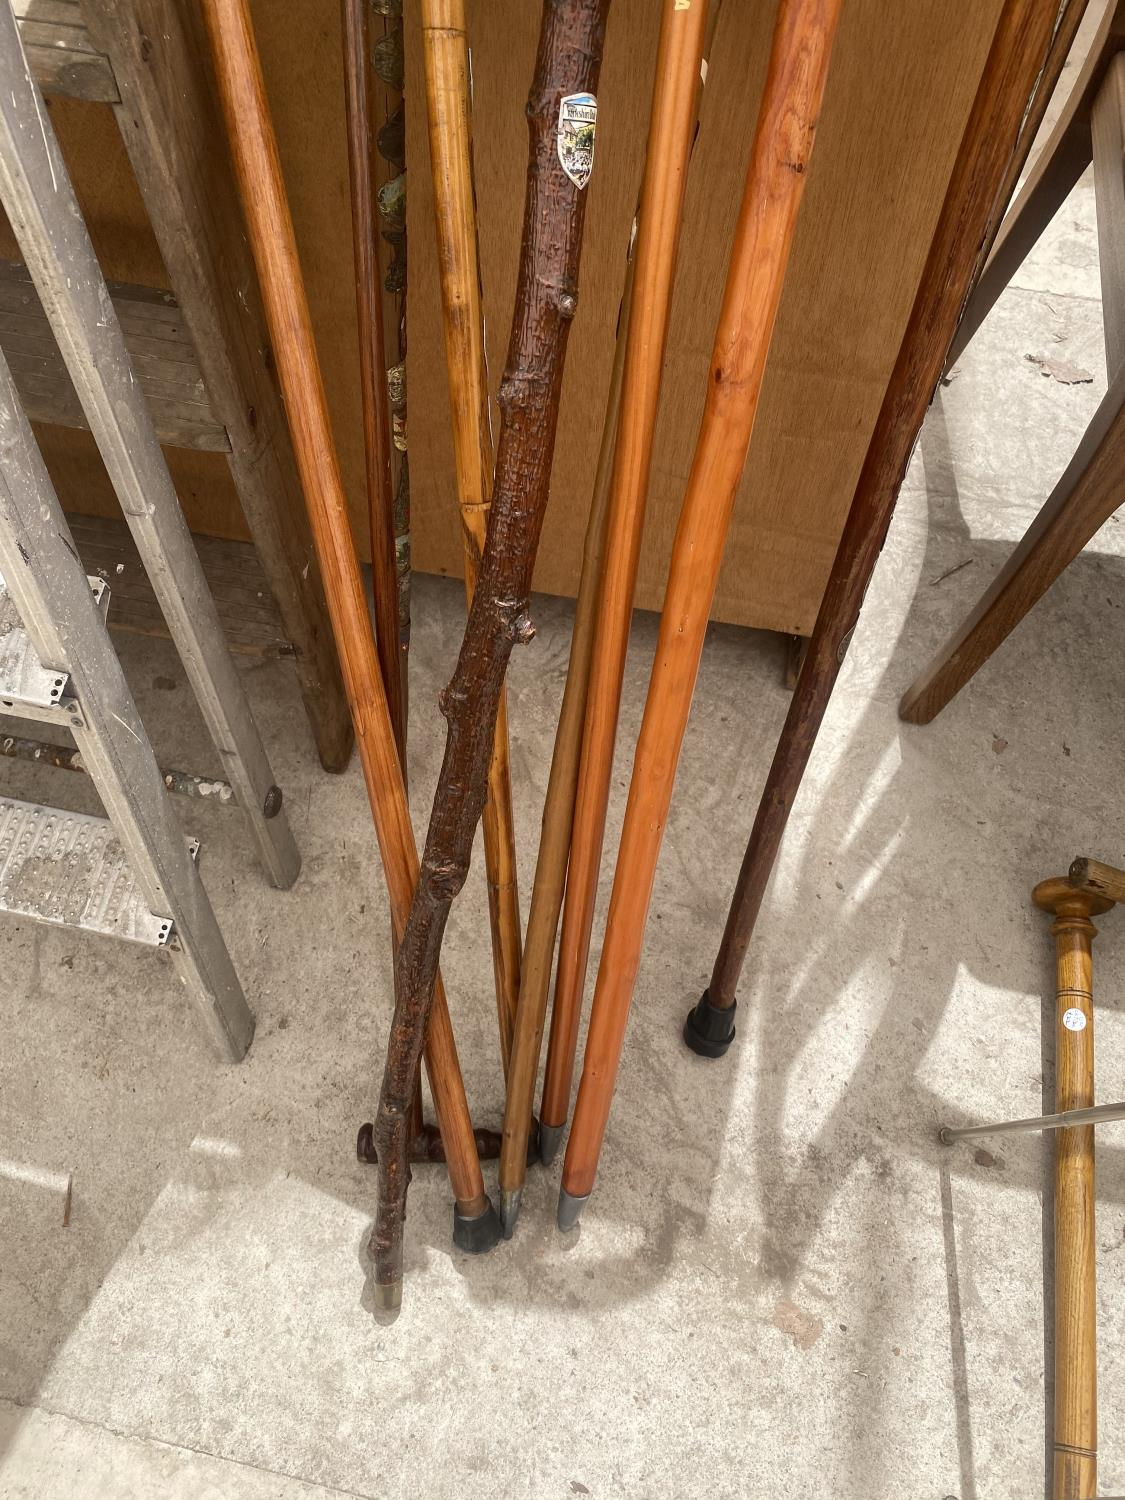 A COLLECTION OF DECORATIVE AND UNUSUAL WALKING STICKS - Image 4 of 4